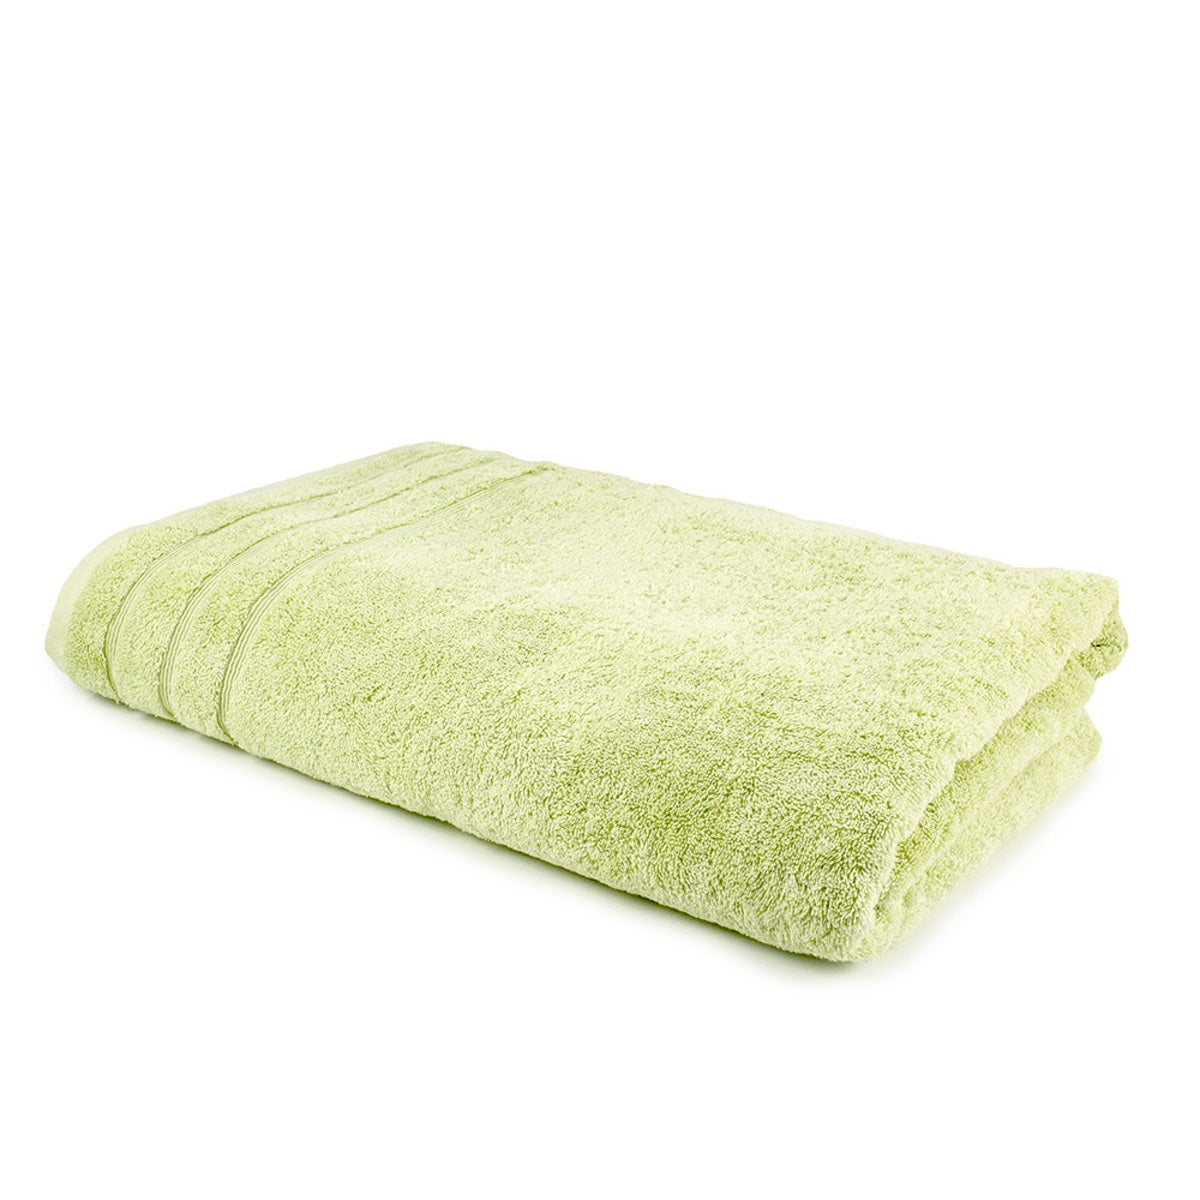 Organic Cotton 700 gram Bath Sheet - Aloe